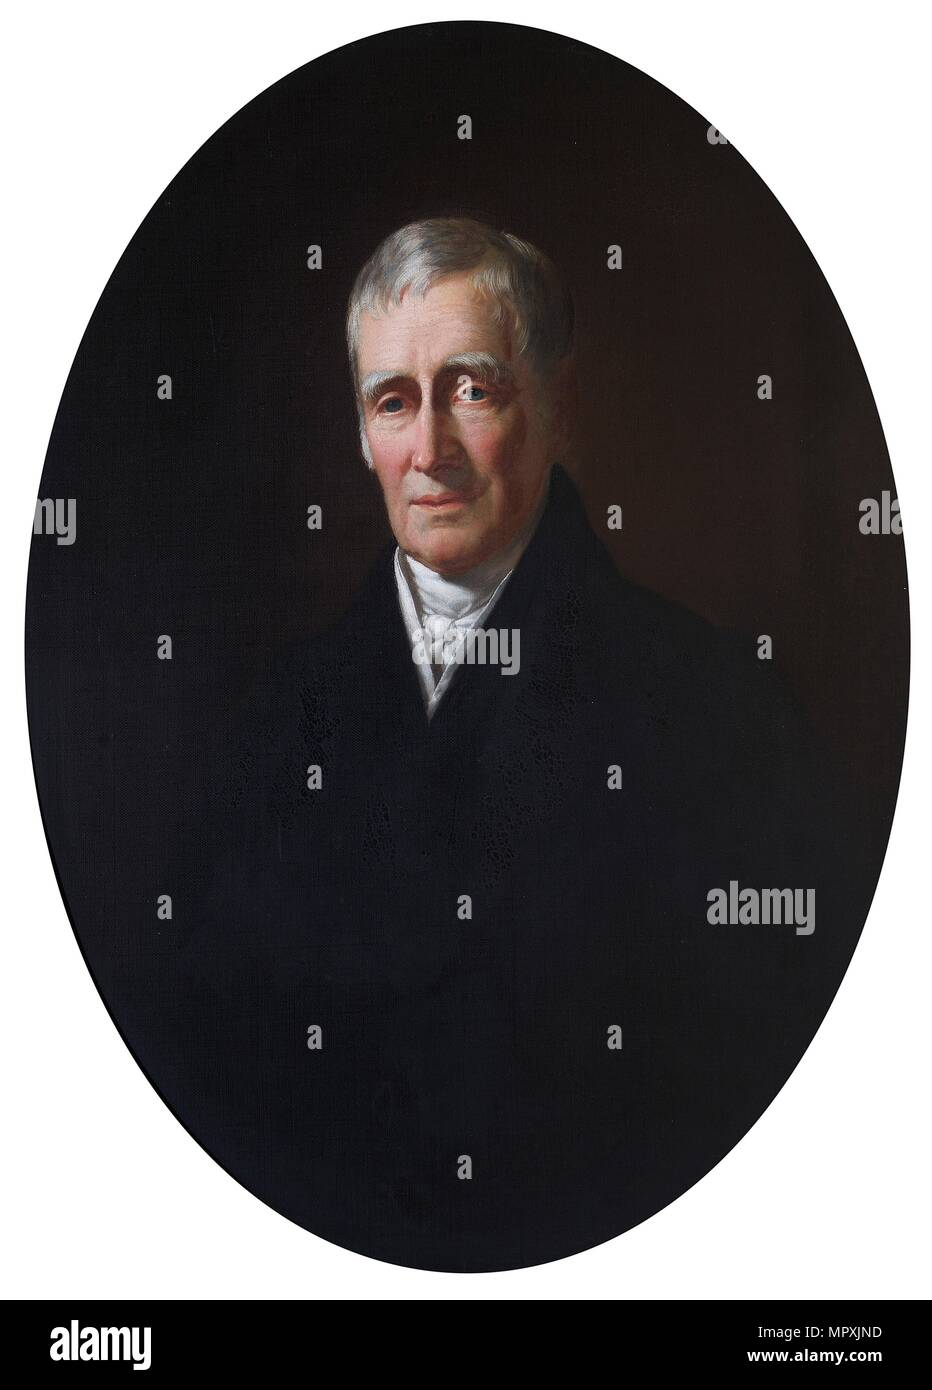 'The Rt Hon Charles Arbuthnot MP', 1849. Artist: Spiridione Gambardella. Stock Photo